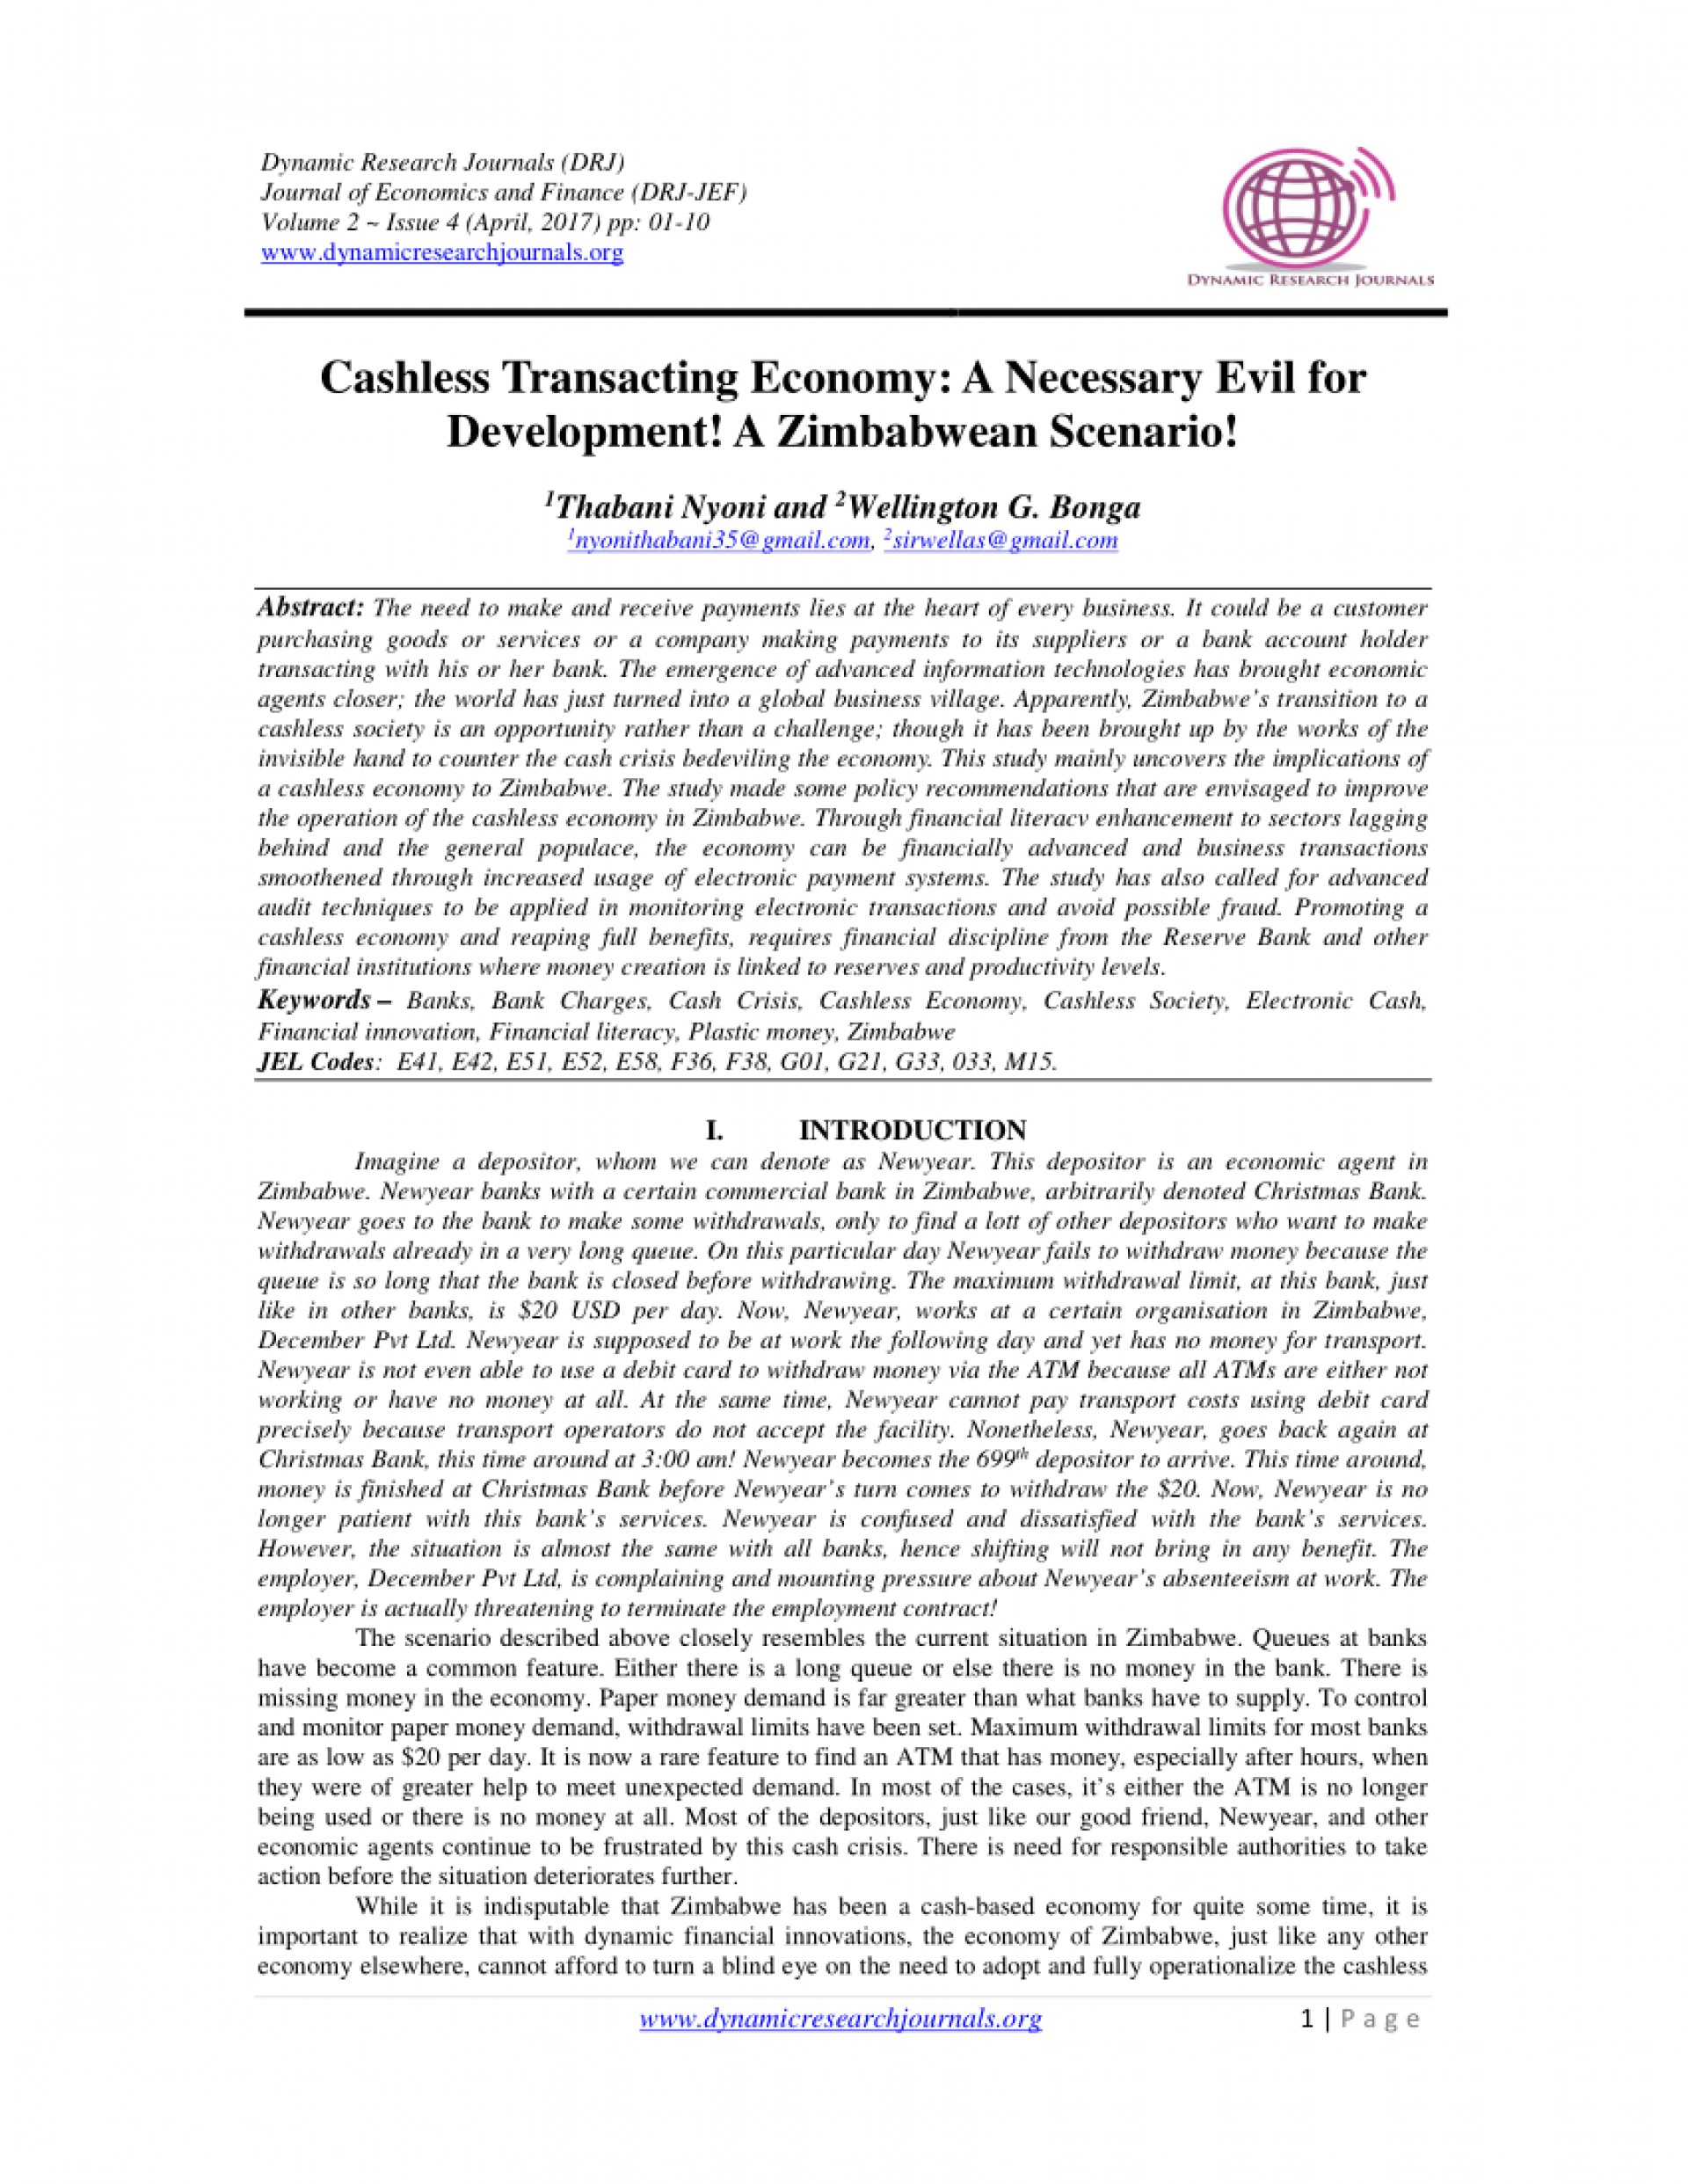 007 Cashless Economy Research Paper Frightening Papers Pdf Cash To 1920